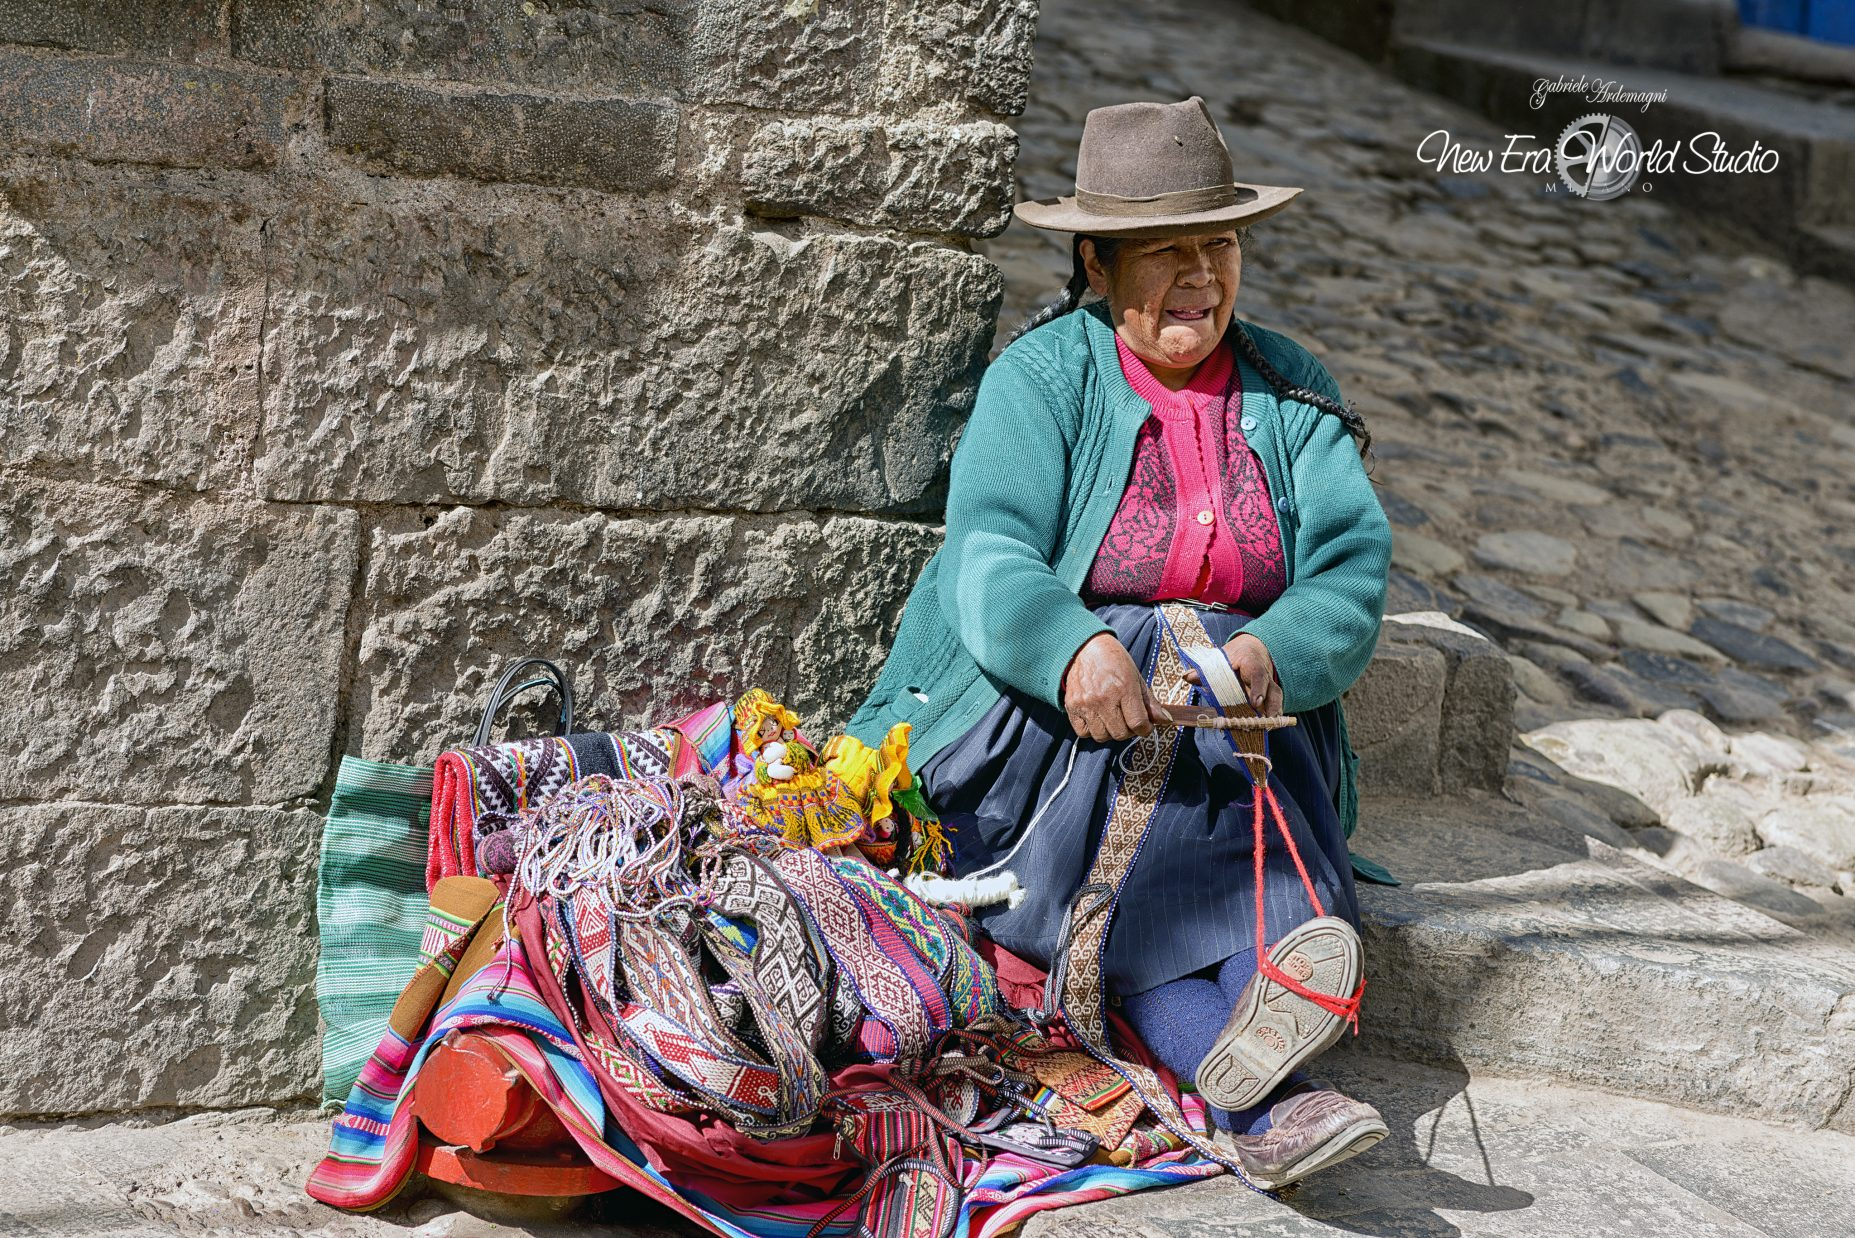 Belt Seller in Cuzco Foto by Gabriele Ardemagni